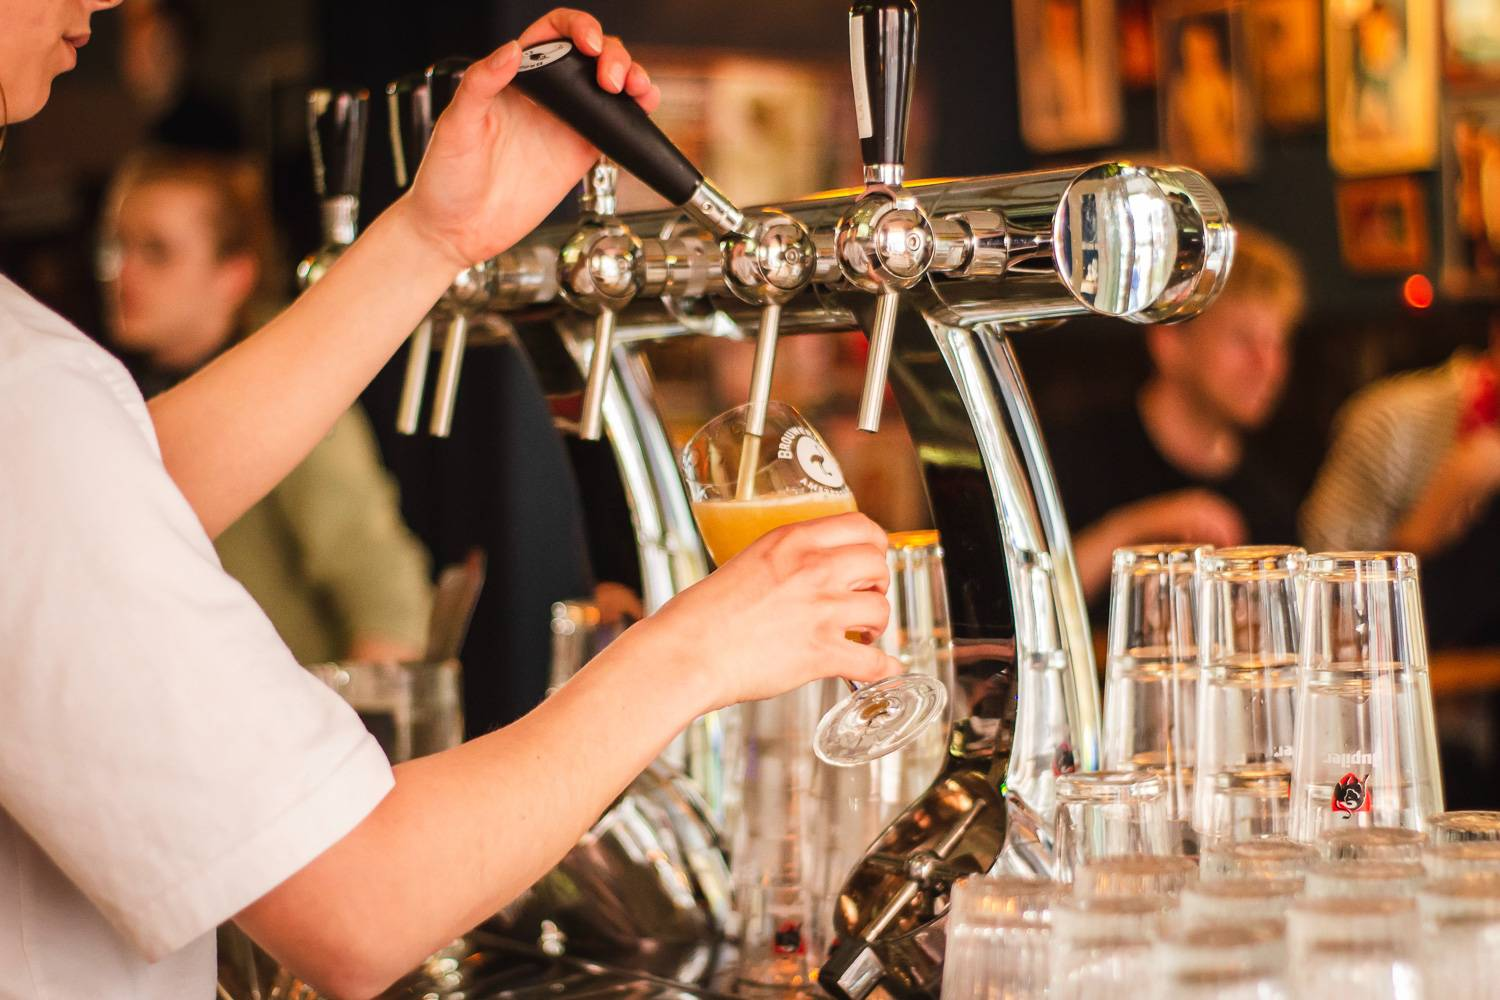 Image of a man pouring beer from a tap.